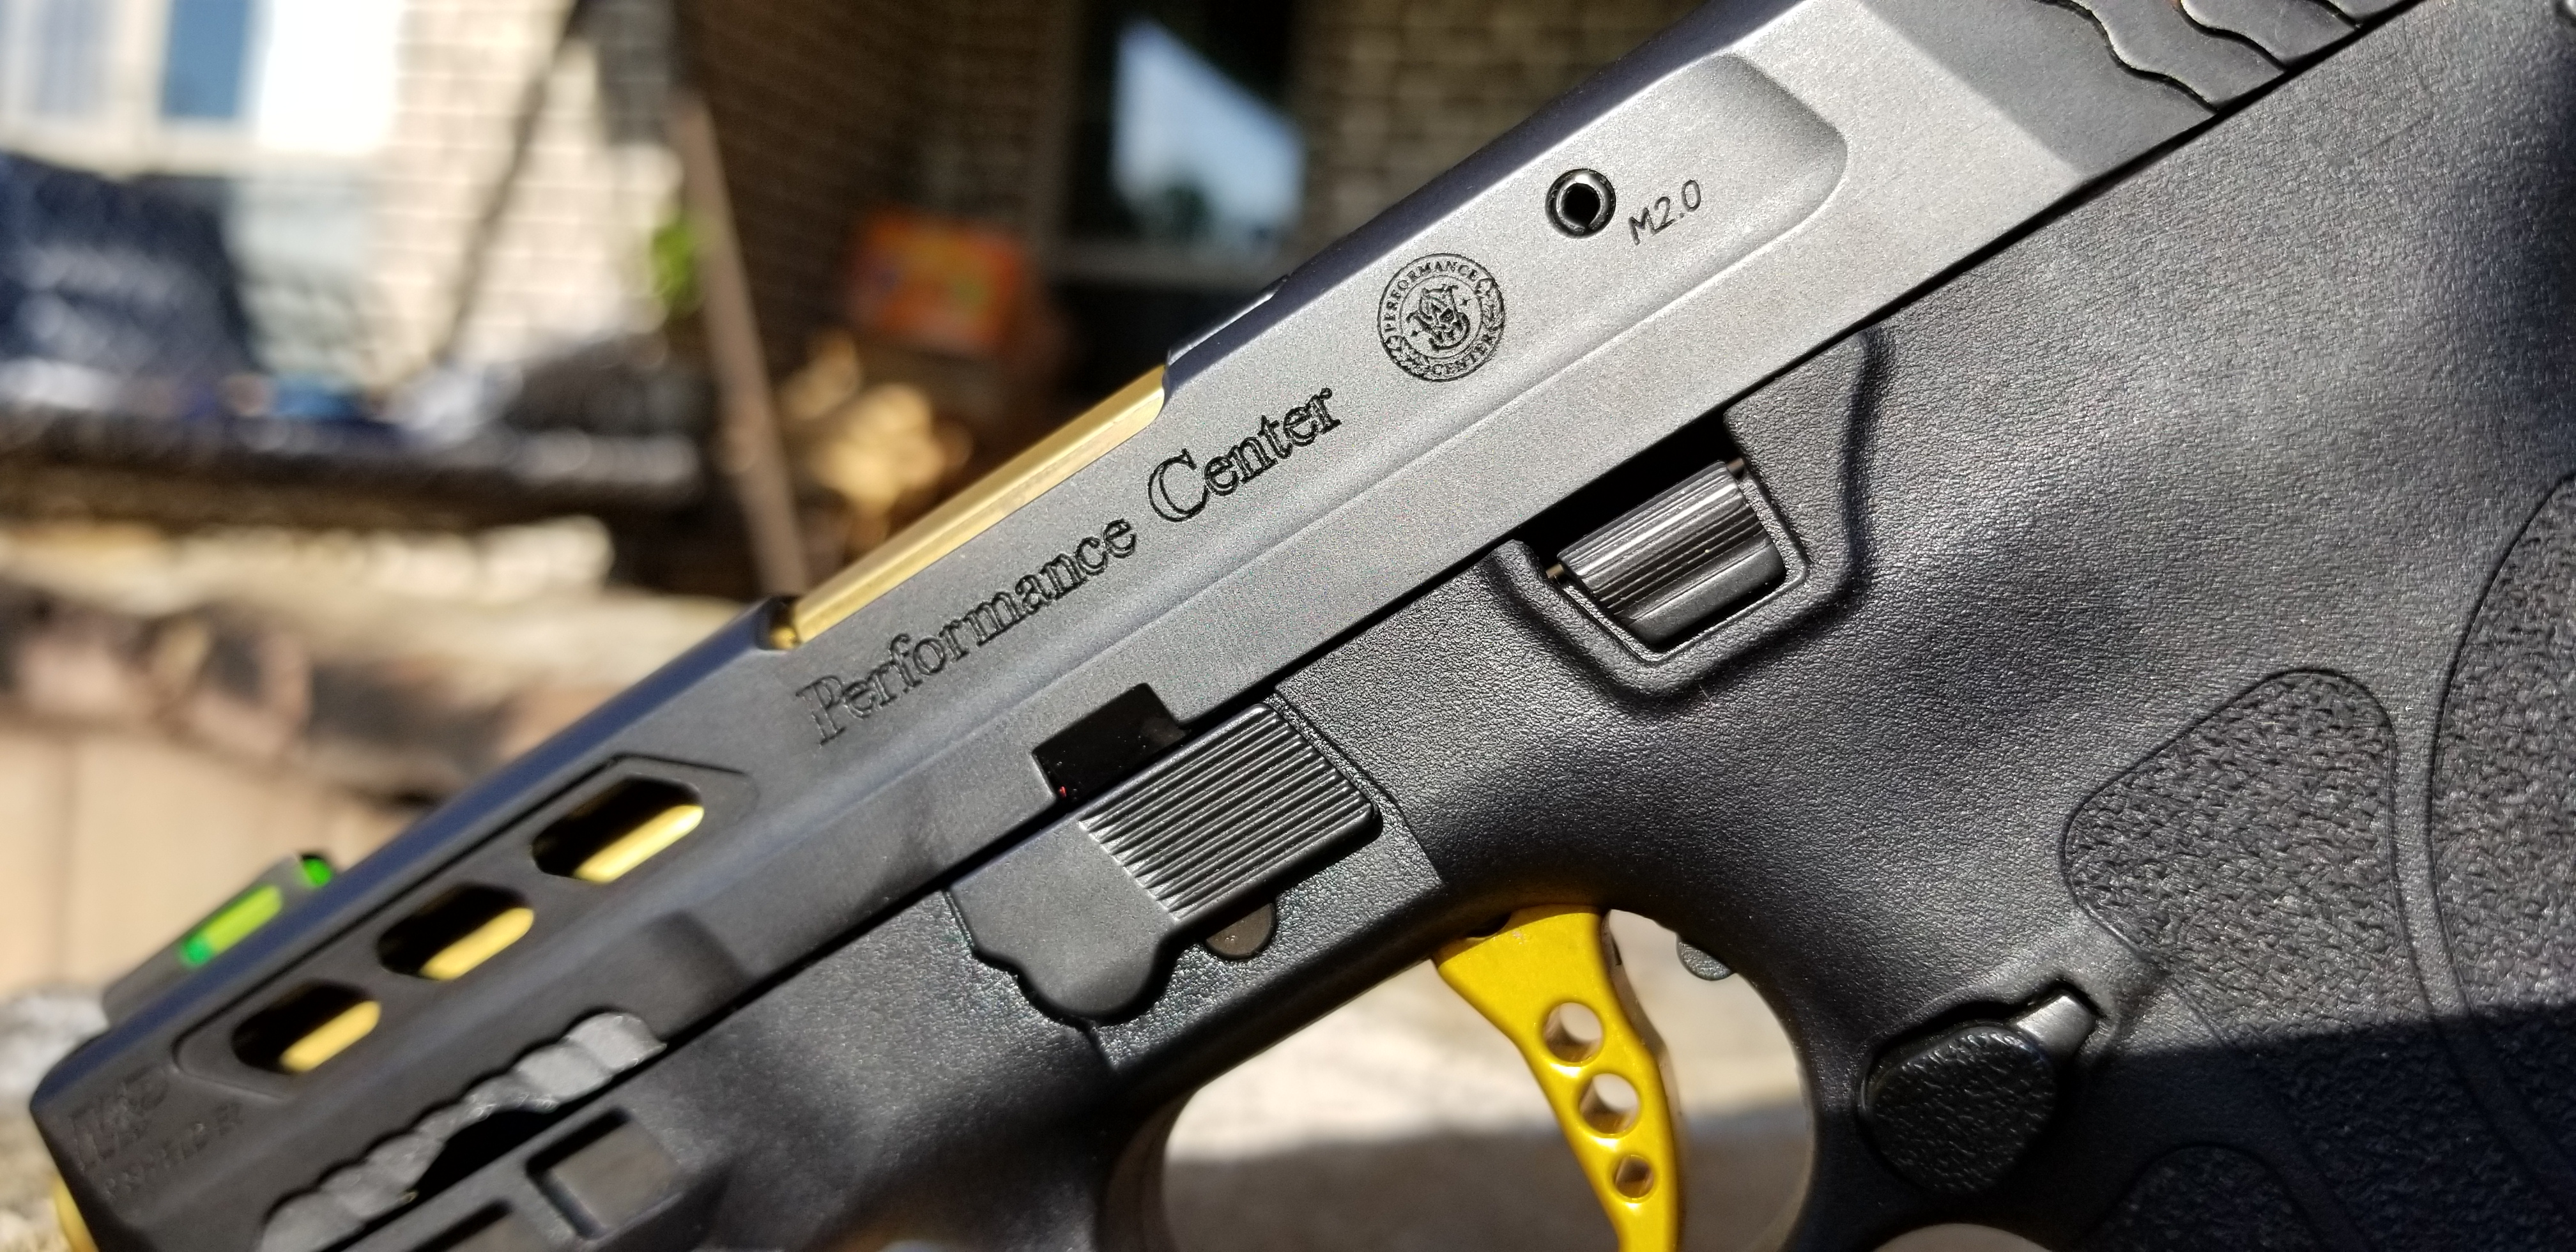 RECALL ALERT: Smith & Wesson Issues M&P Shield Pistol Recall